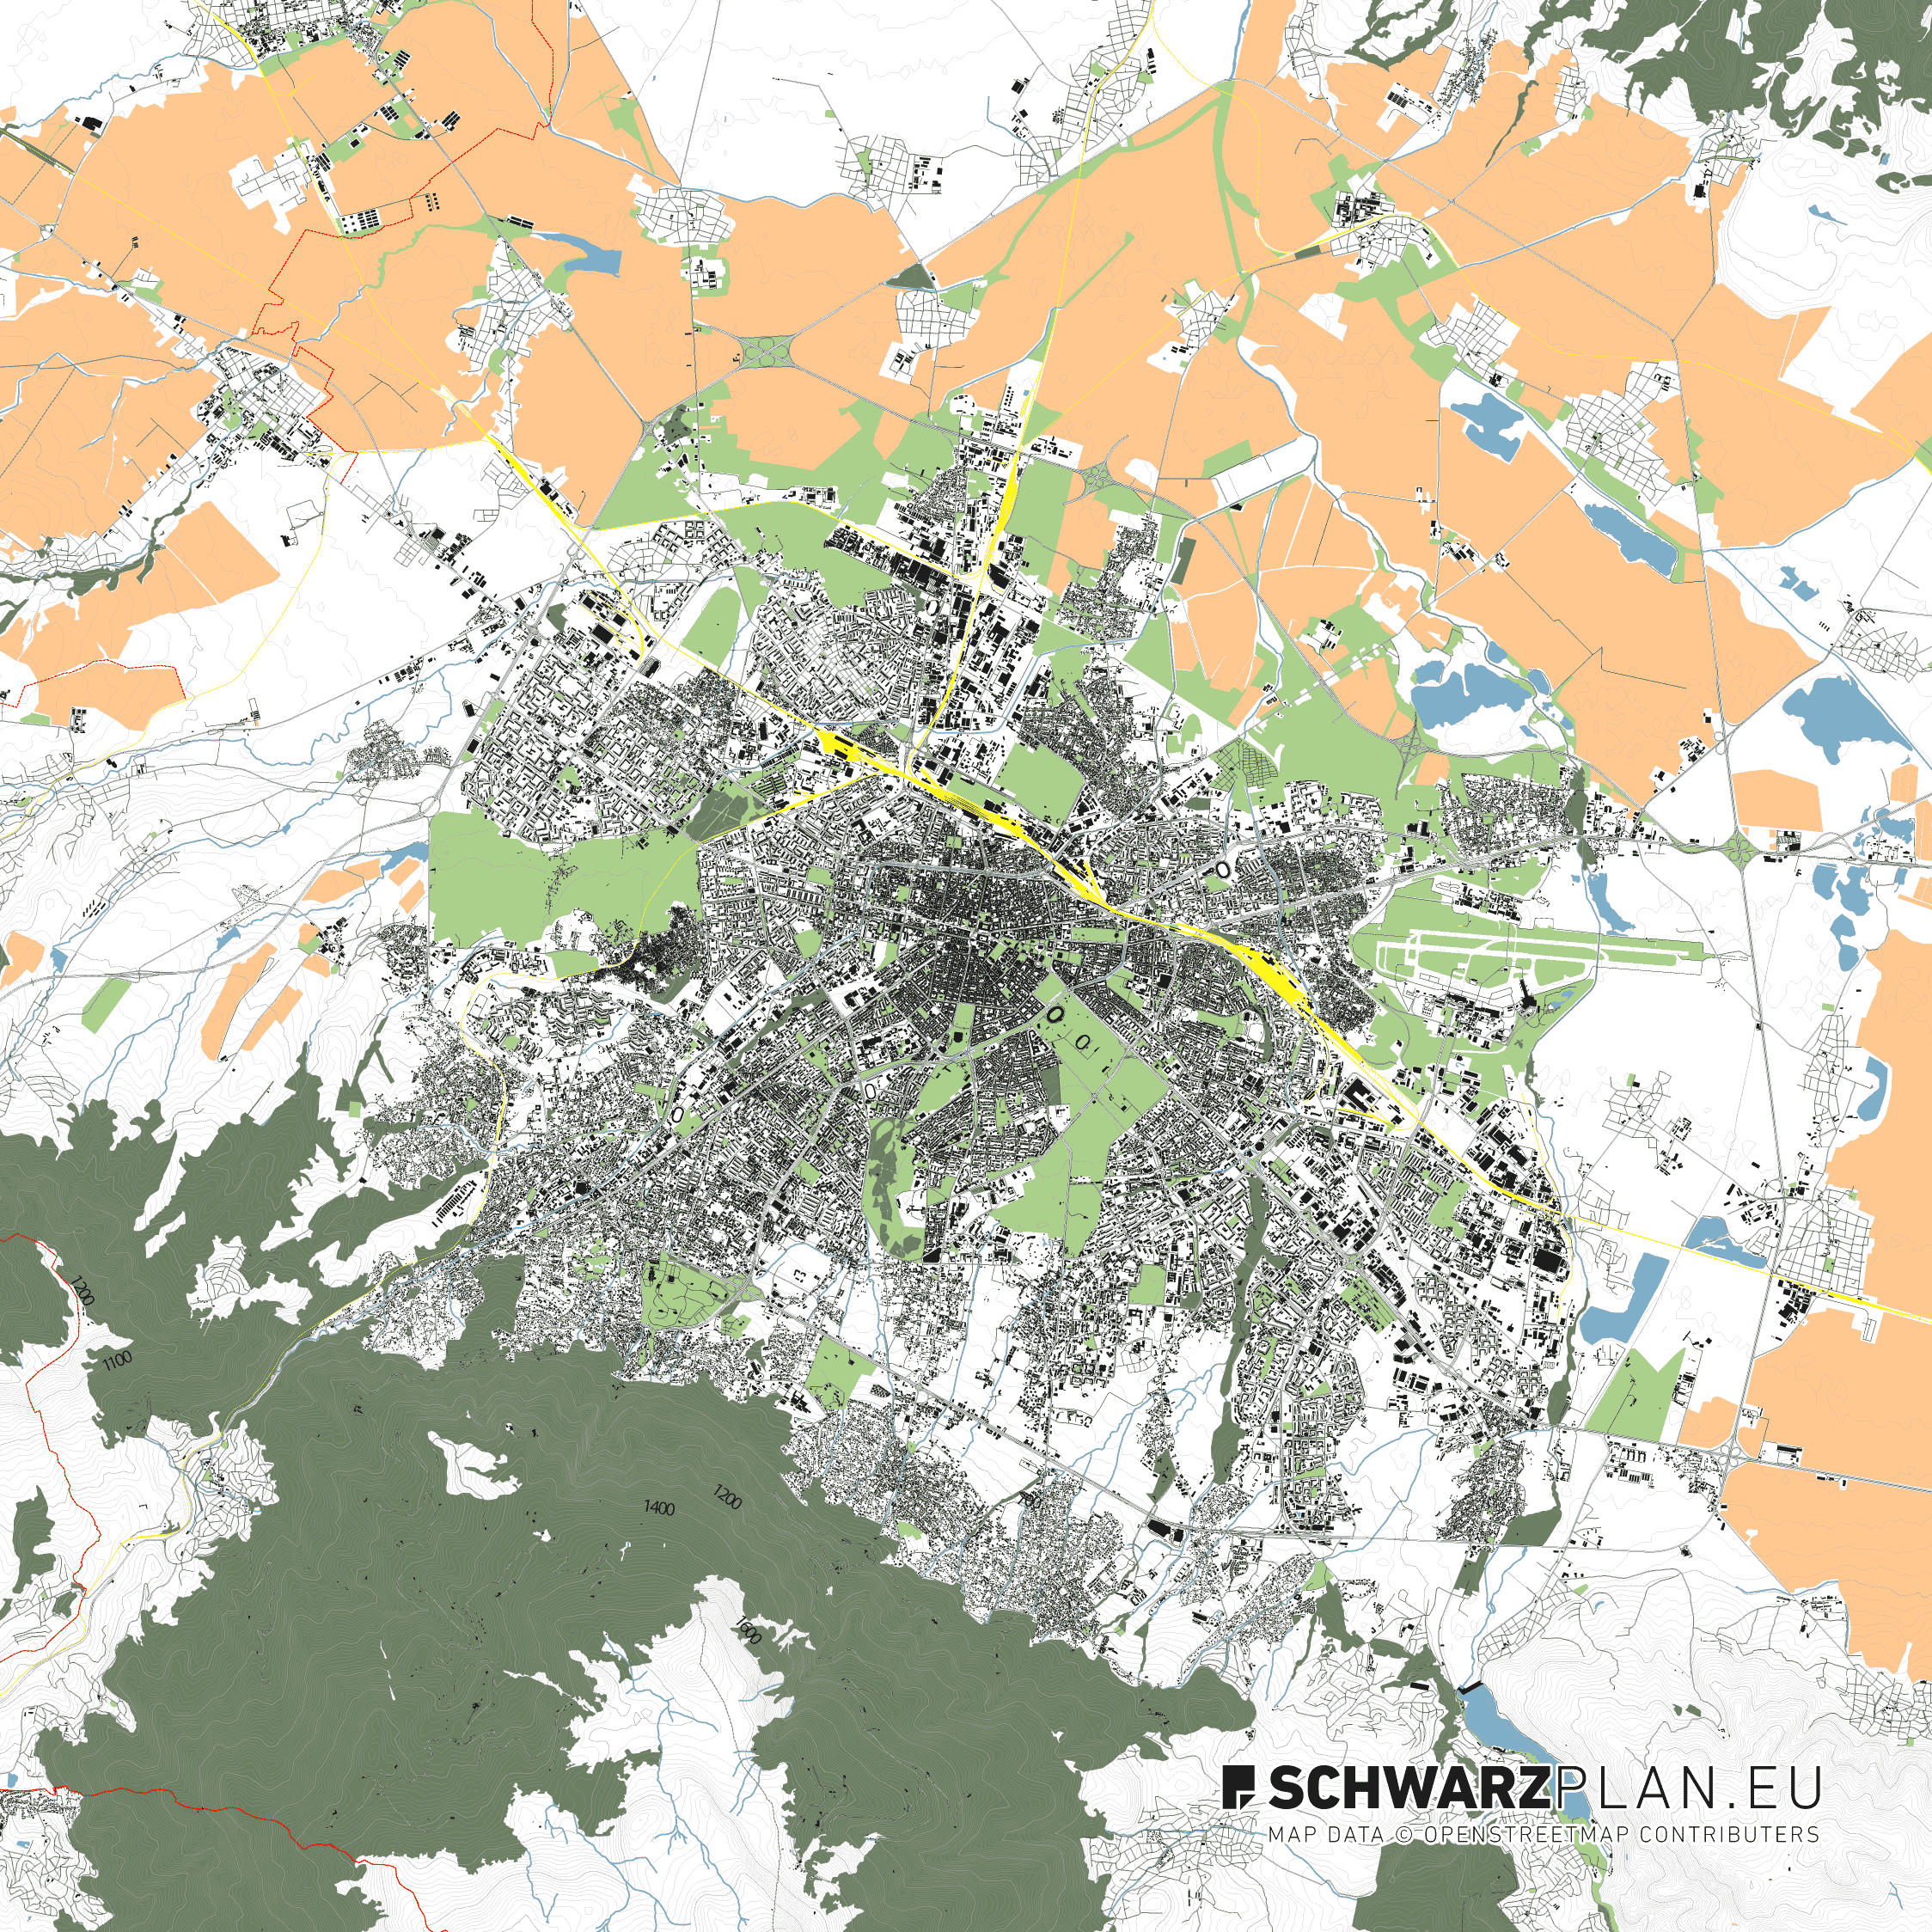 Site plan of Sofia in Bulgaria